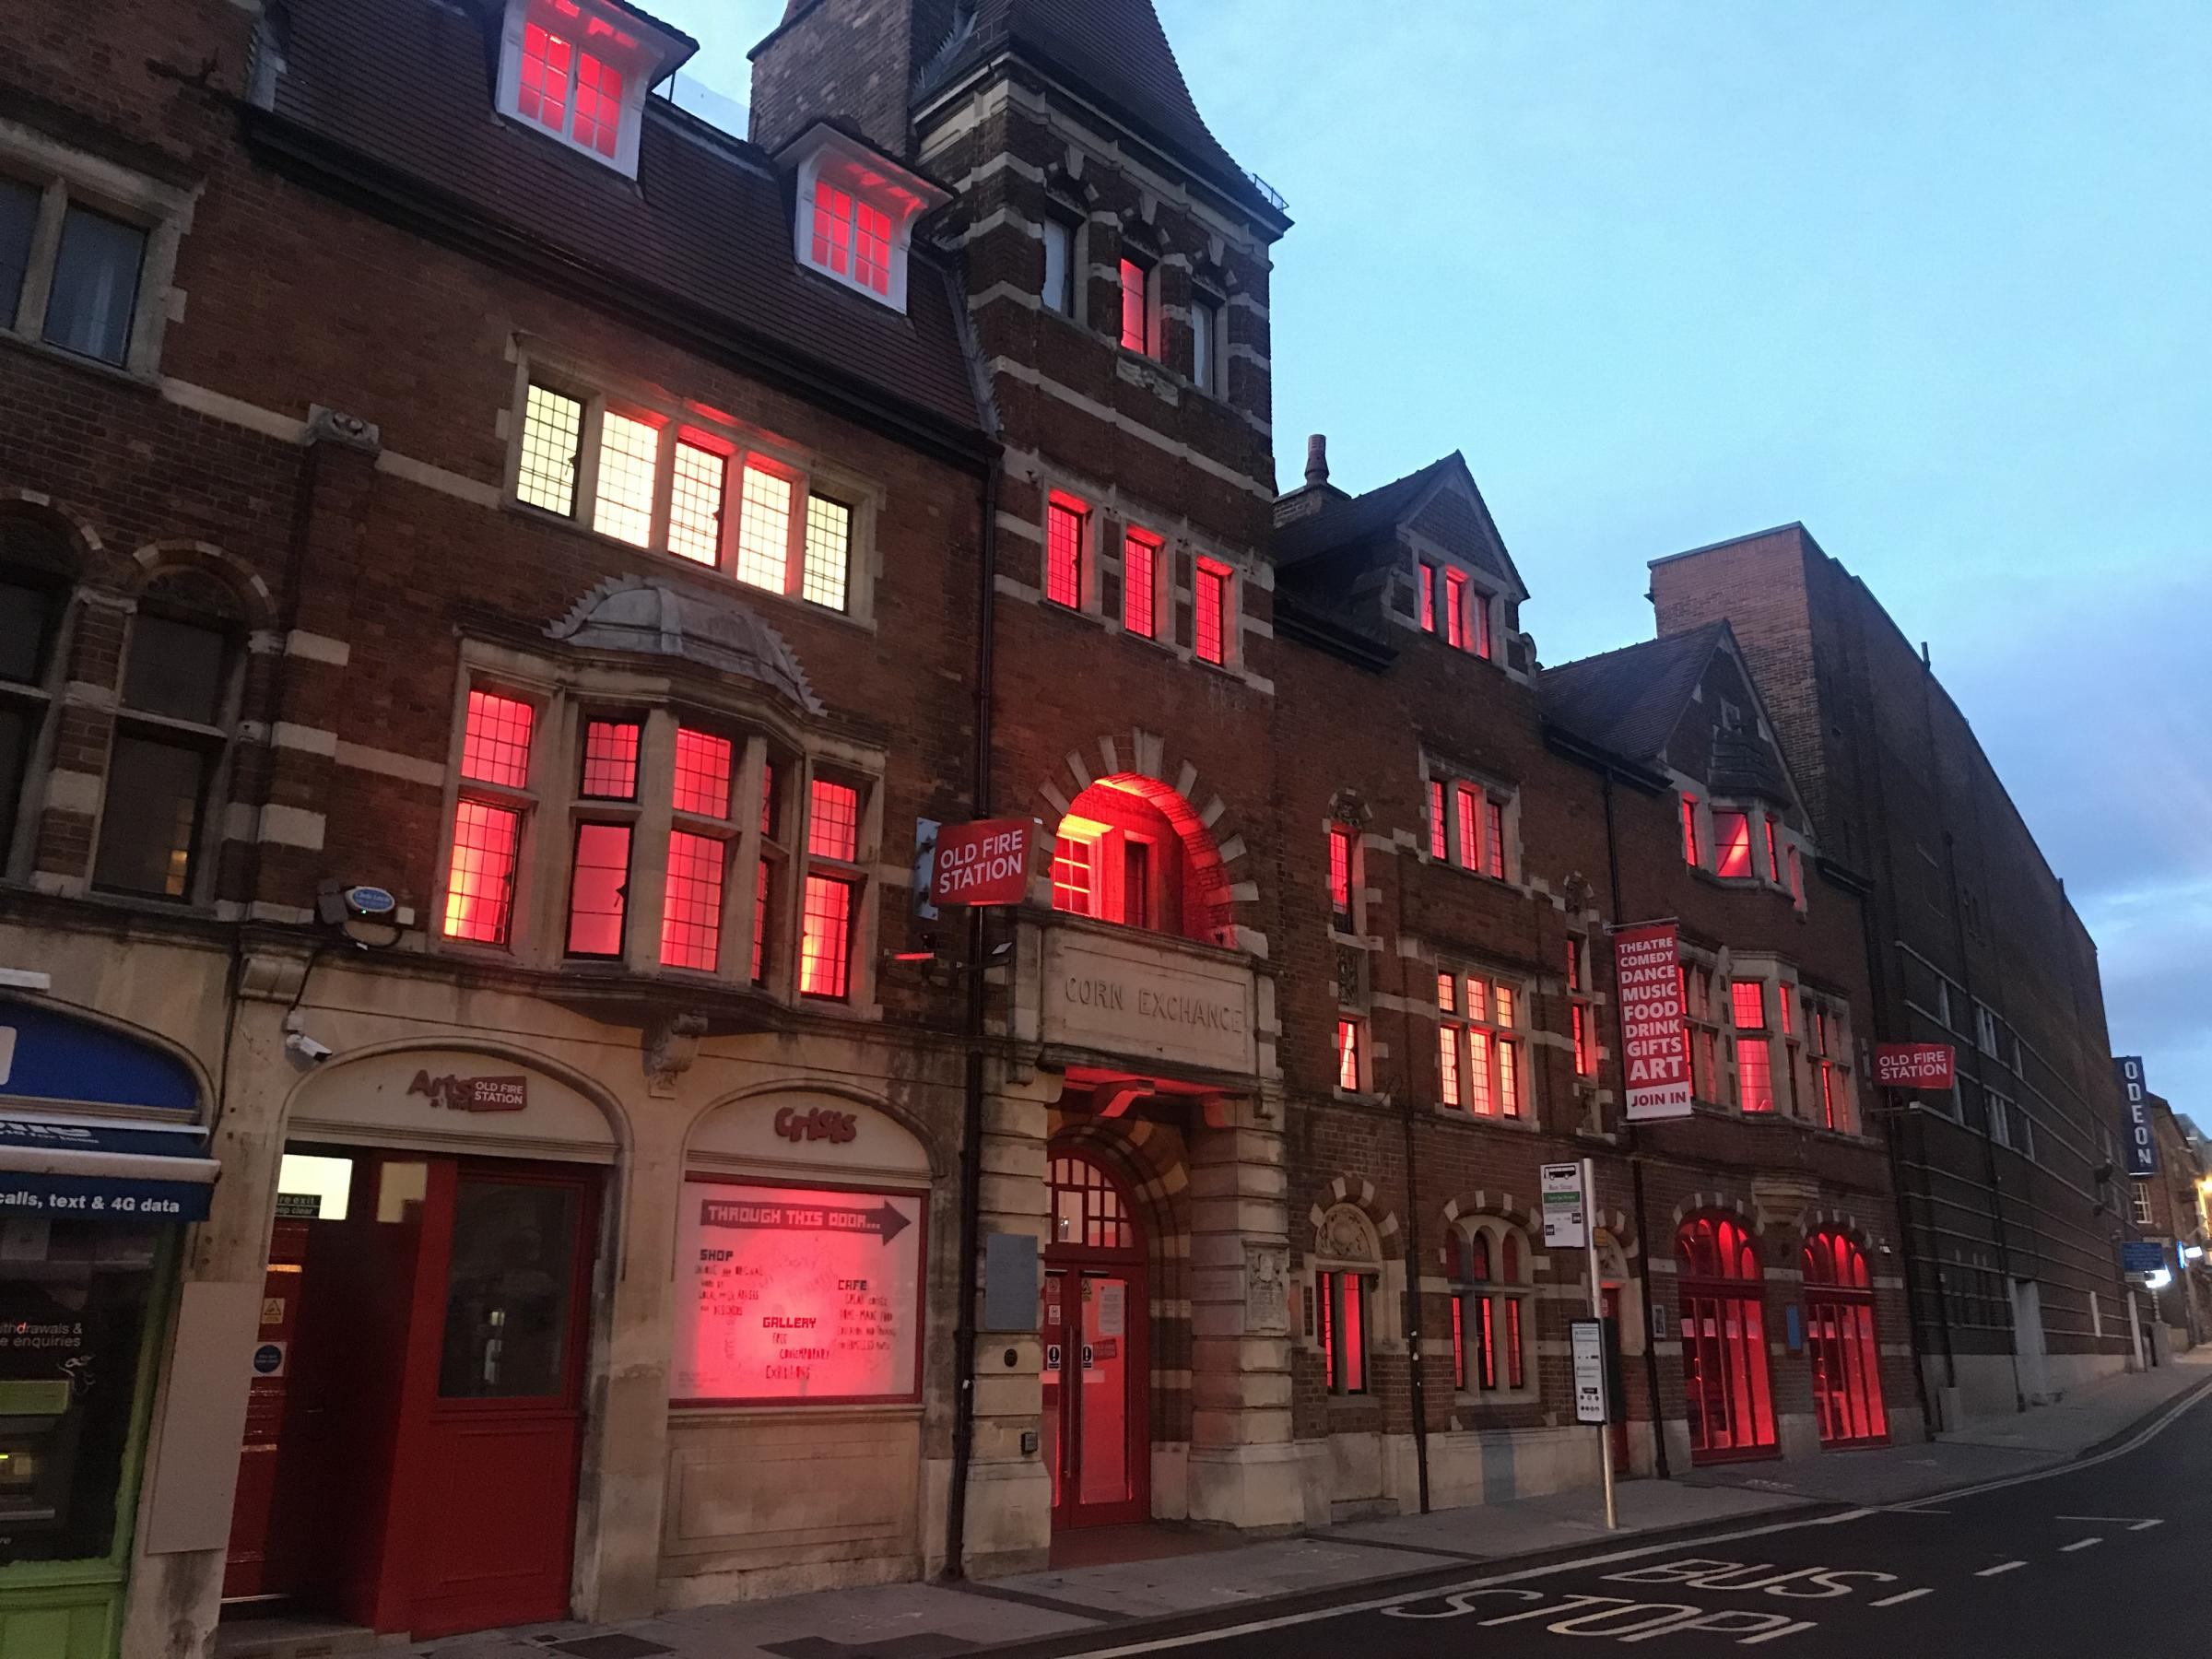 Oxfordshire theatres, such as the Old Fire Station, lit up their buildings with red light last July to highlight the financial emergency in the sector. Many will do the same tonight